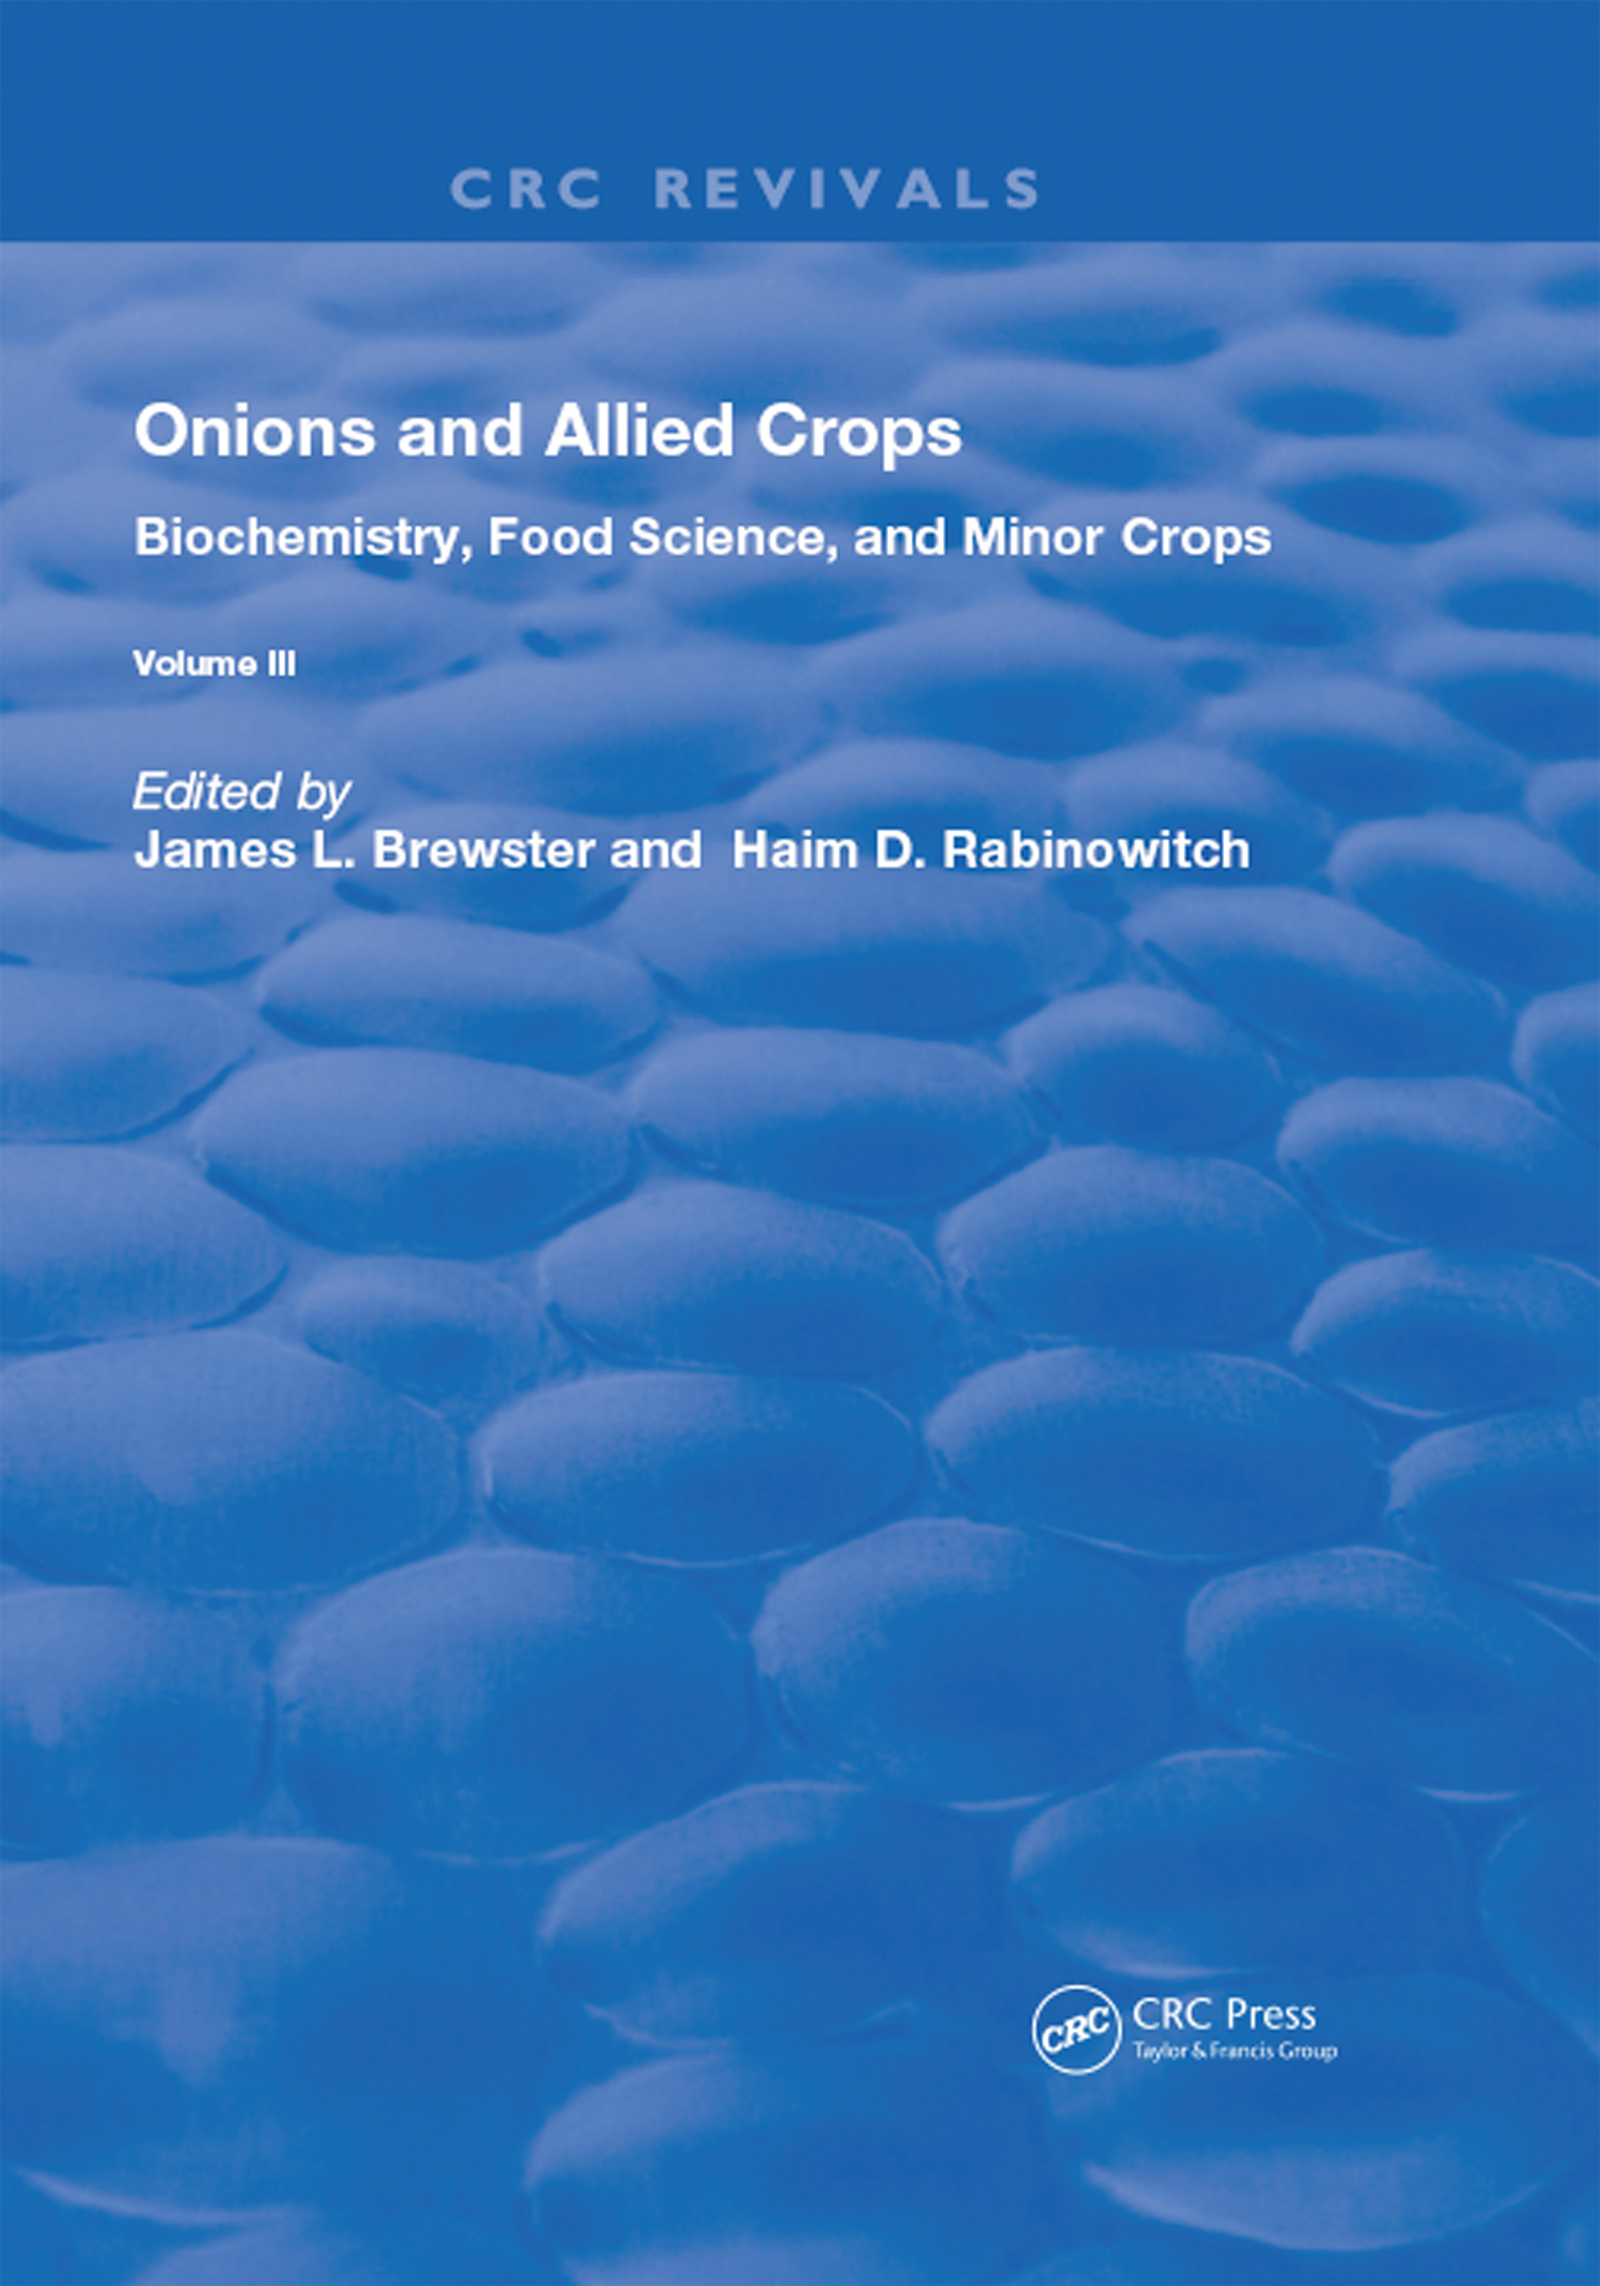 Onions and Allied Crops